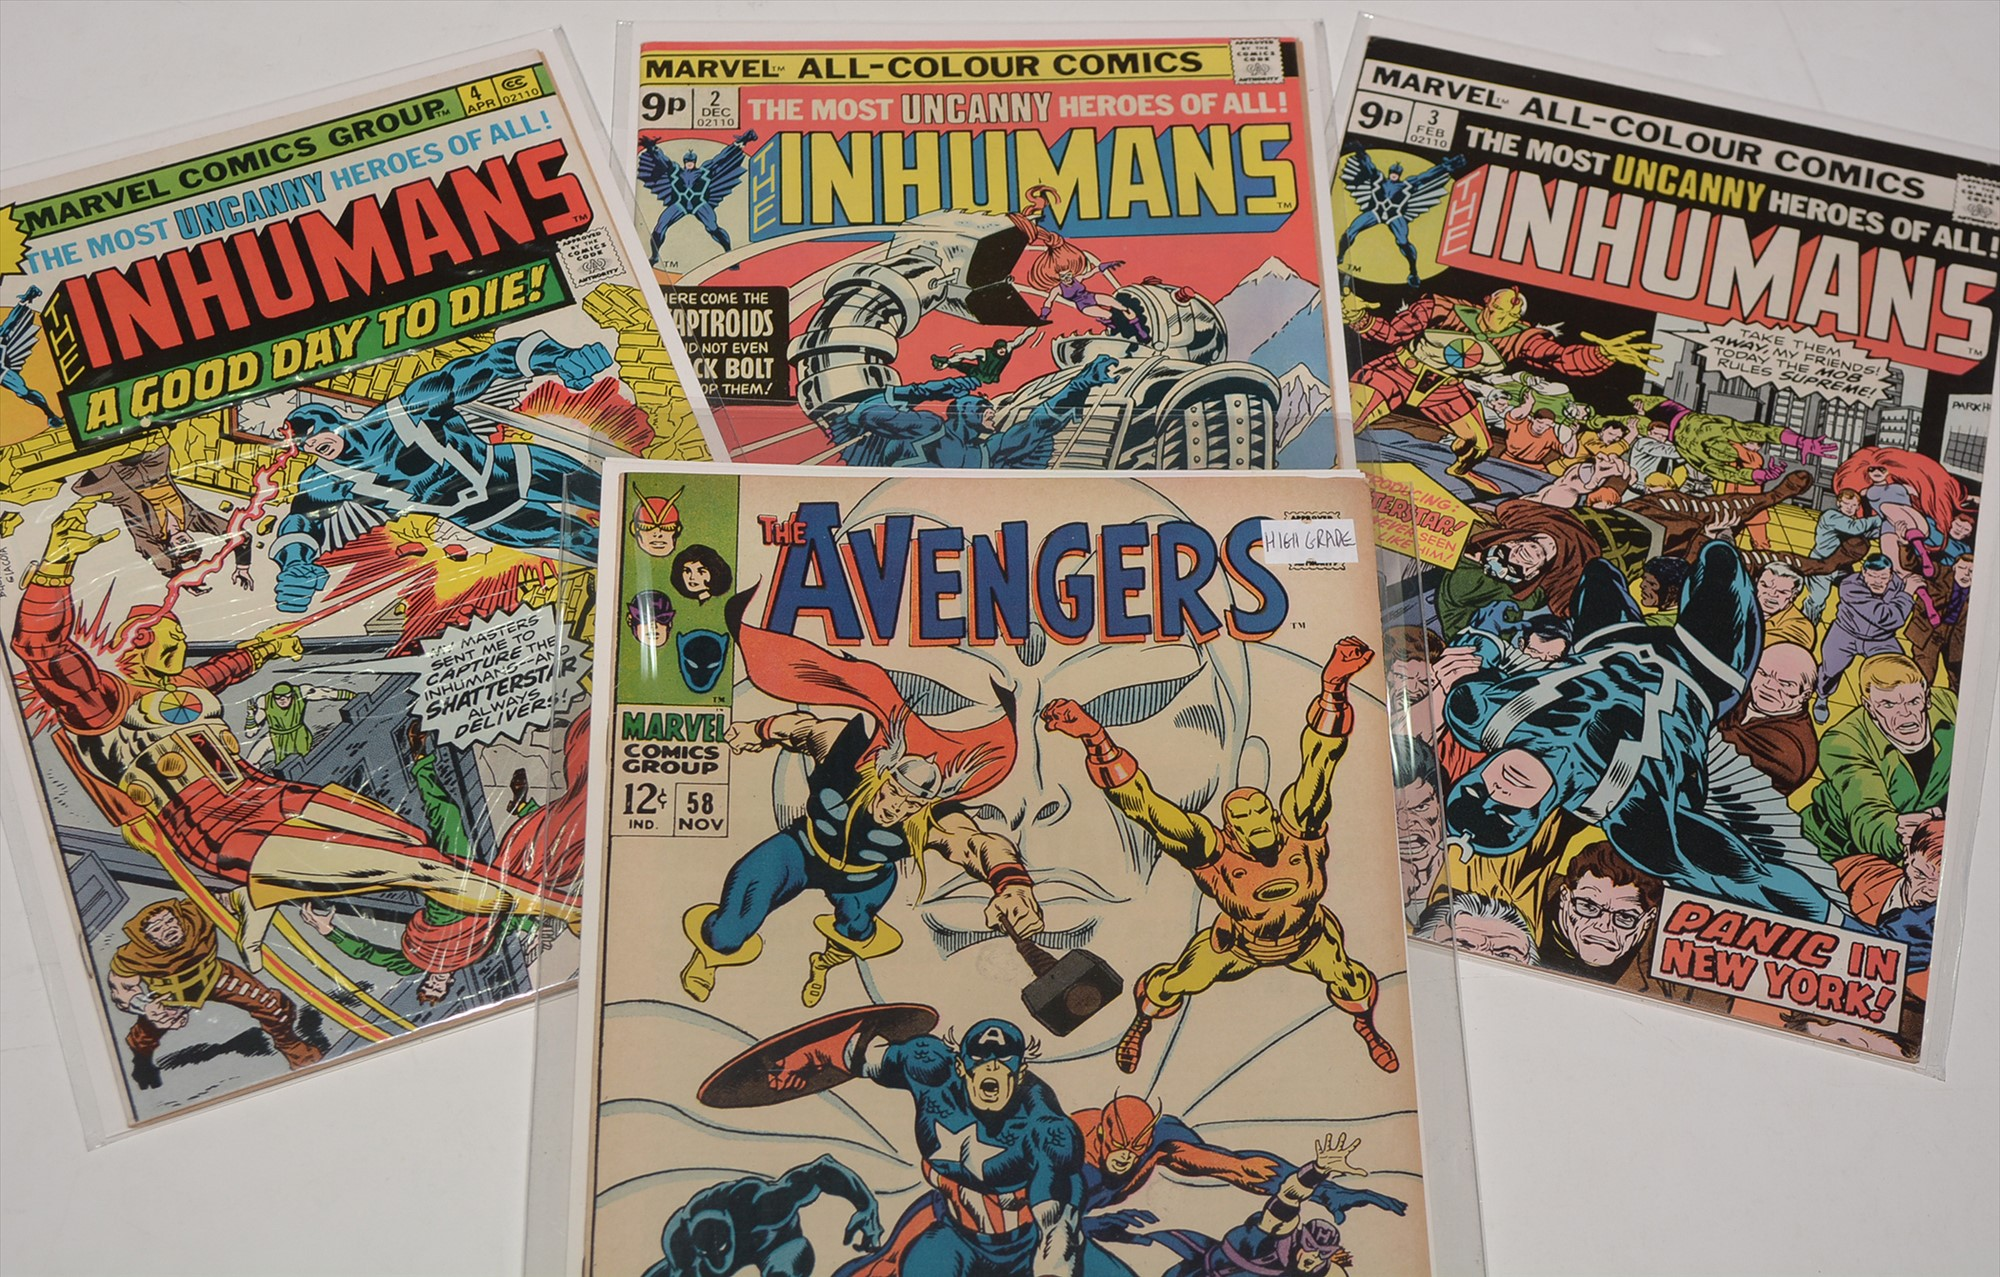 The Avengers No. 58; together with The Inhumans No's. 2, 3 and 4.